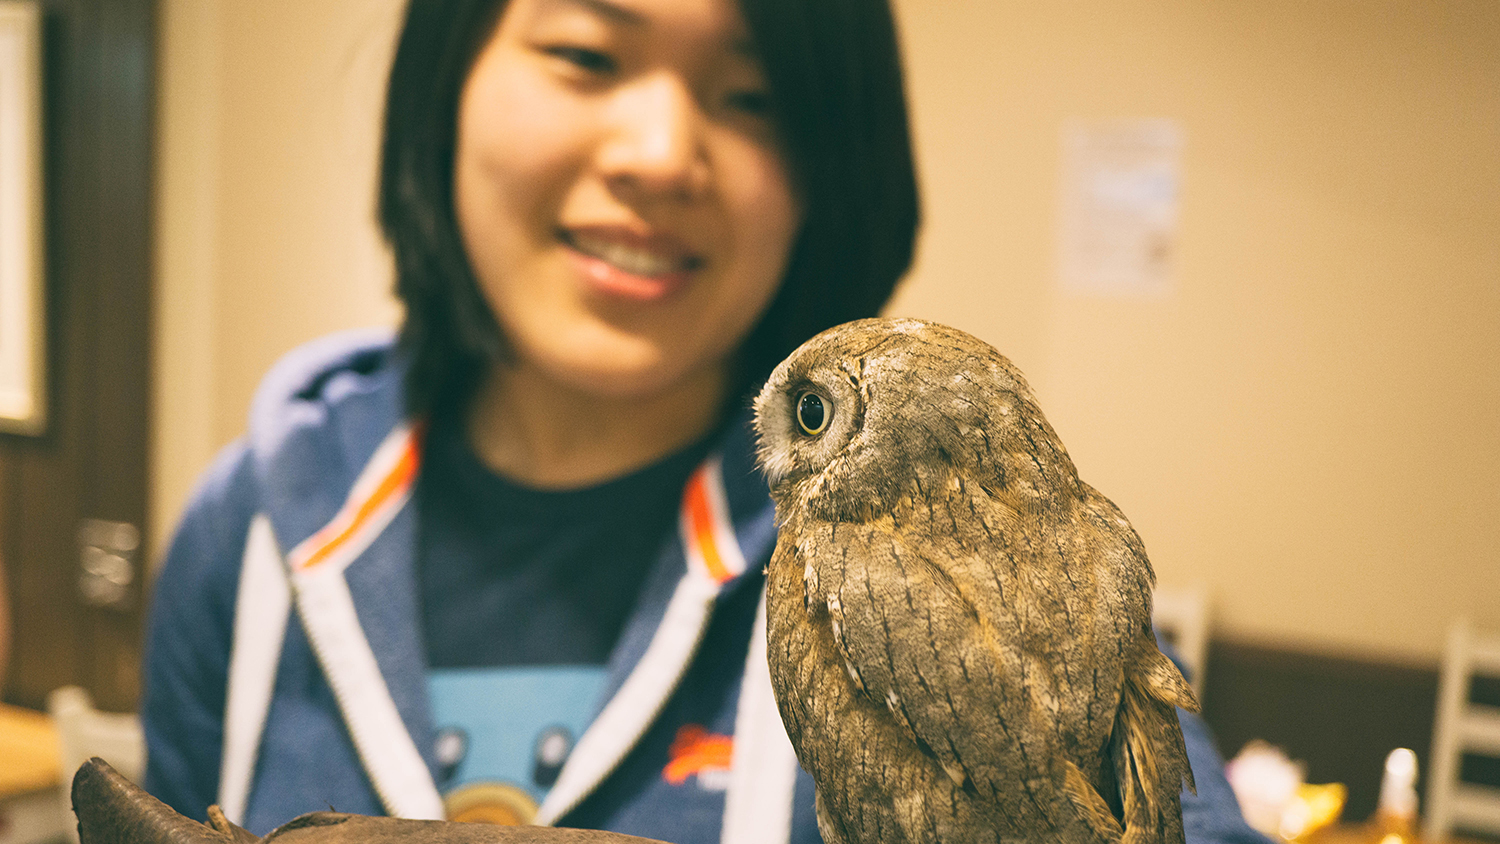 Me holding an owl.